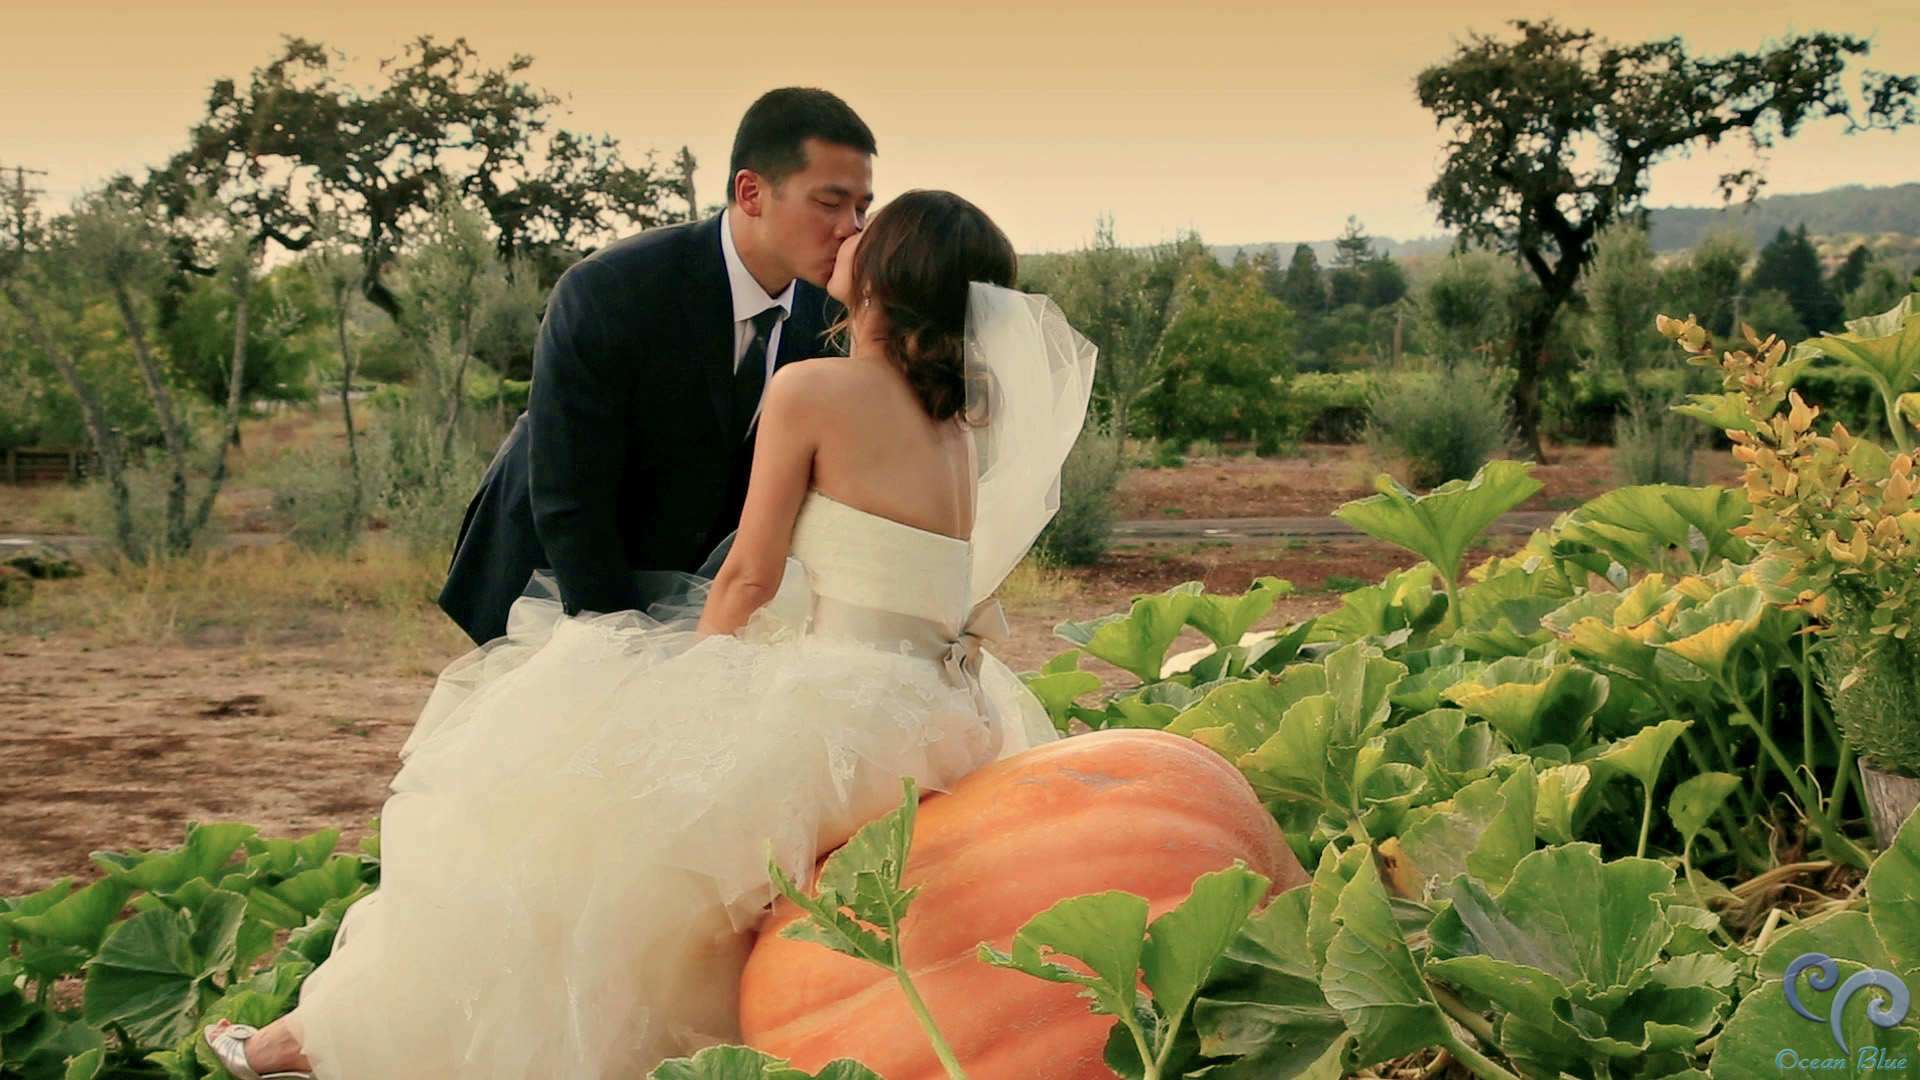 kunde_winery_kenwood_wedding_kiss.jpg